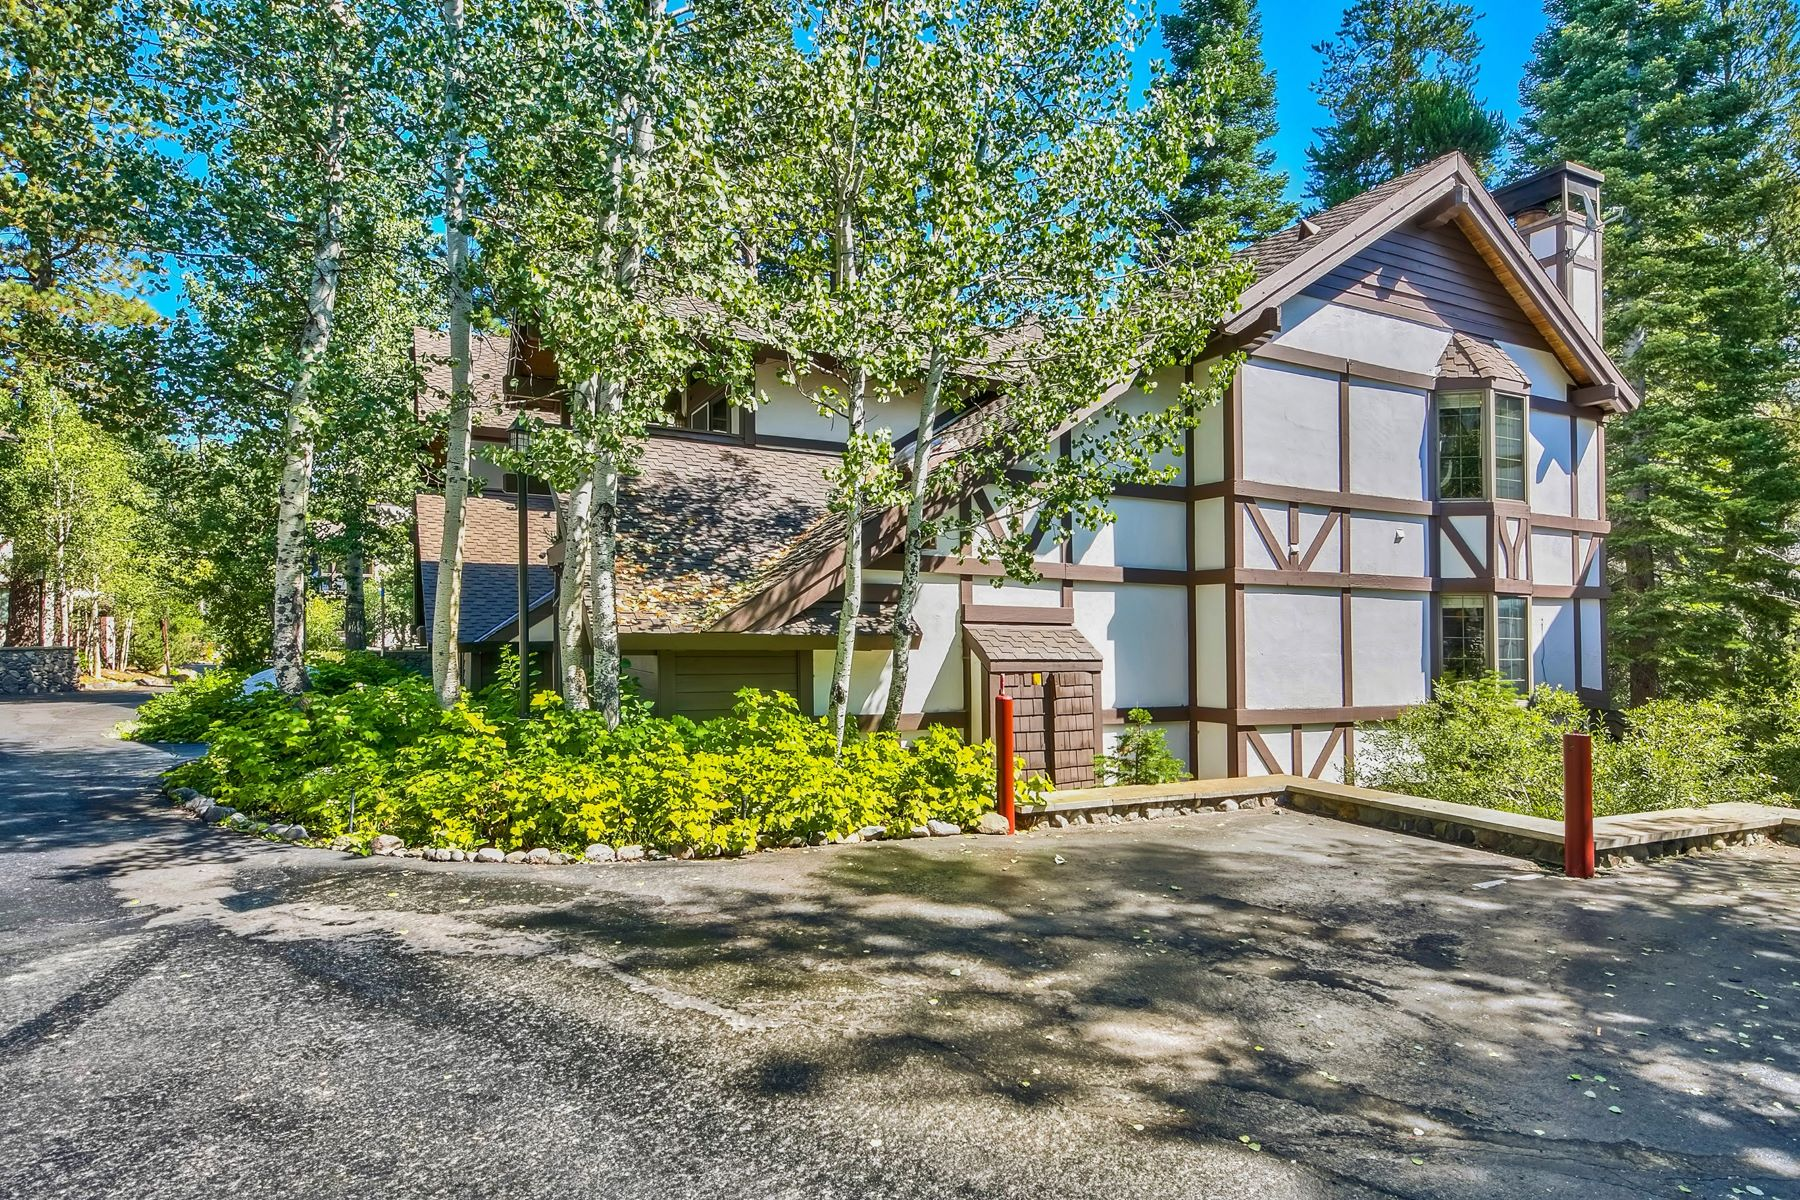 Additional photo for property listing at 227 Squaw Valley Rd. #27, Olympic Valley 227 Squaw Valley Road #27 Olympic Valley, California 96146 United States